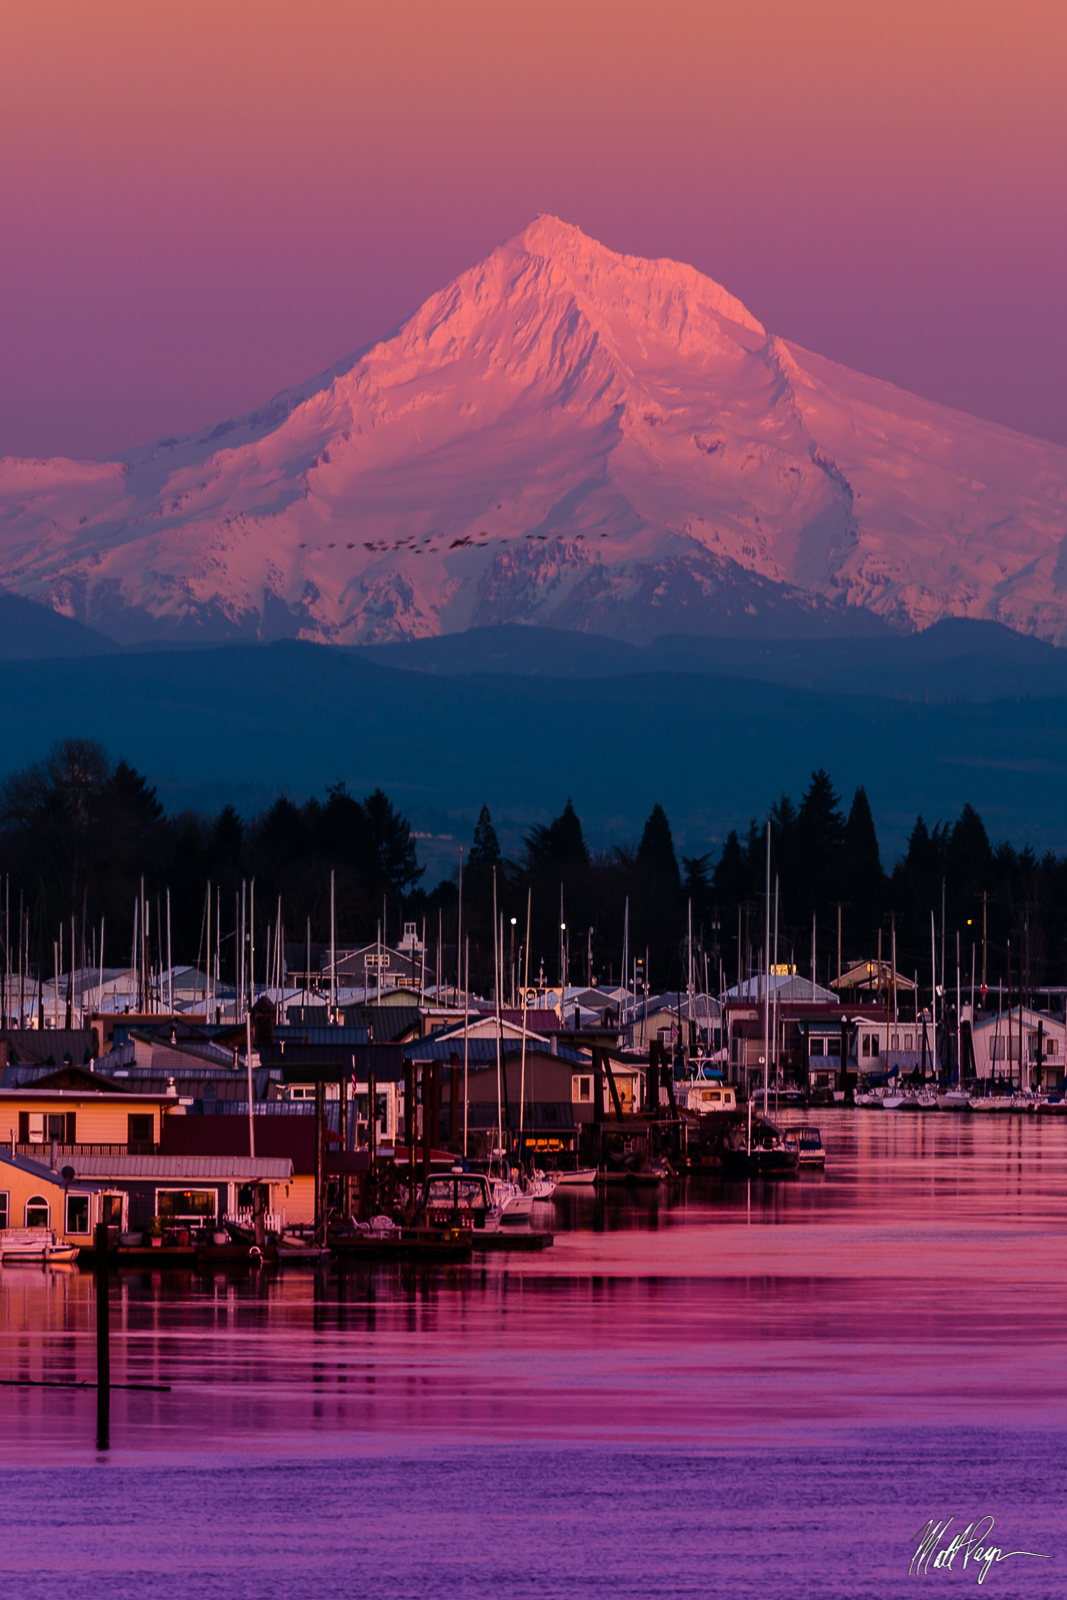 Birds, Harbor, Hayden Island, Interstate 5, Landscape, Mount Hood, Oregon, Portland, Portland Oregon, Reflection, Sunset, Water, Landscape Photography, photo